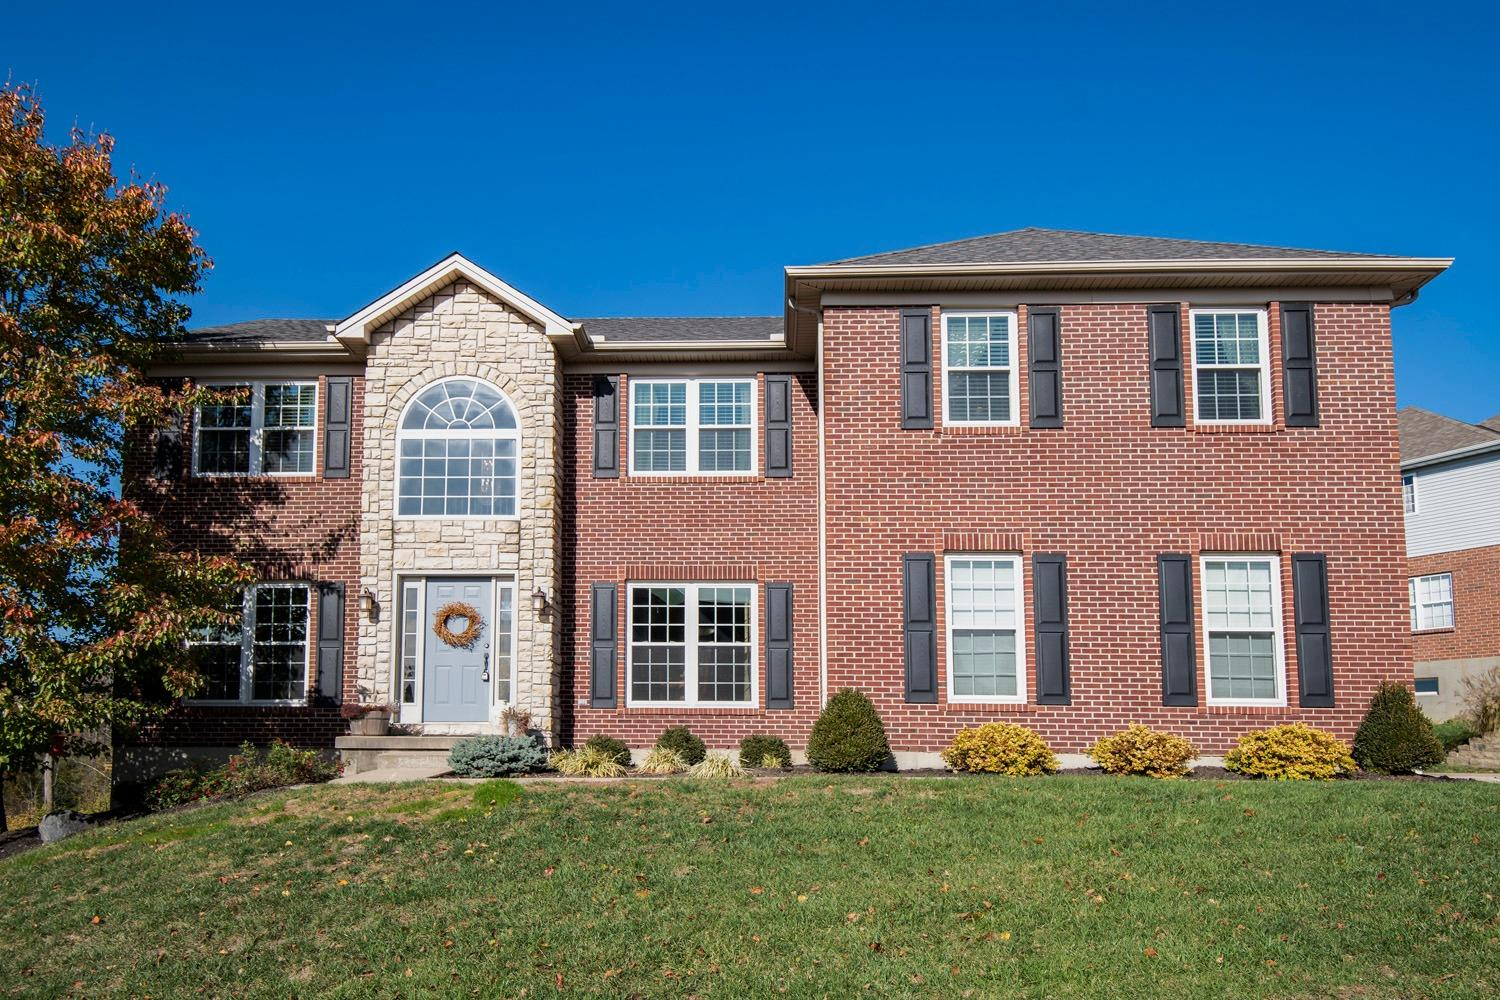 8290 Jordan Ridge Dr Miami Twp. (West), OH